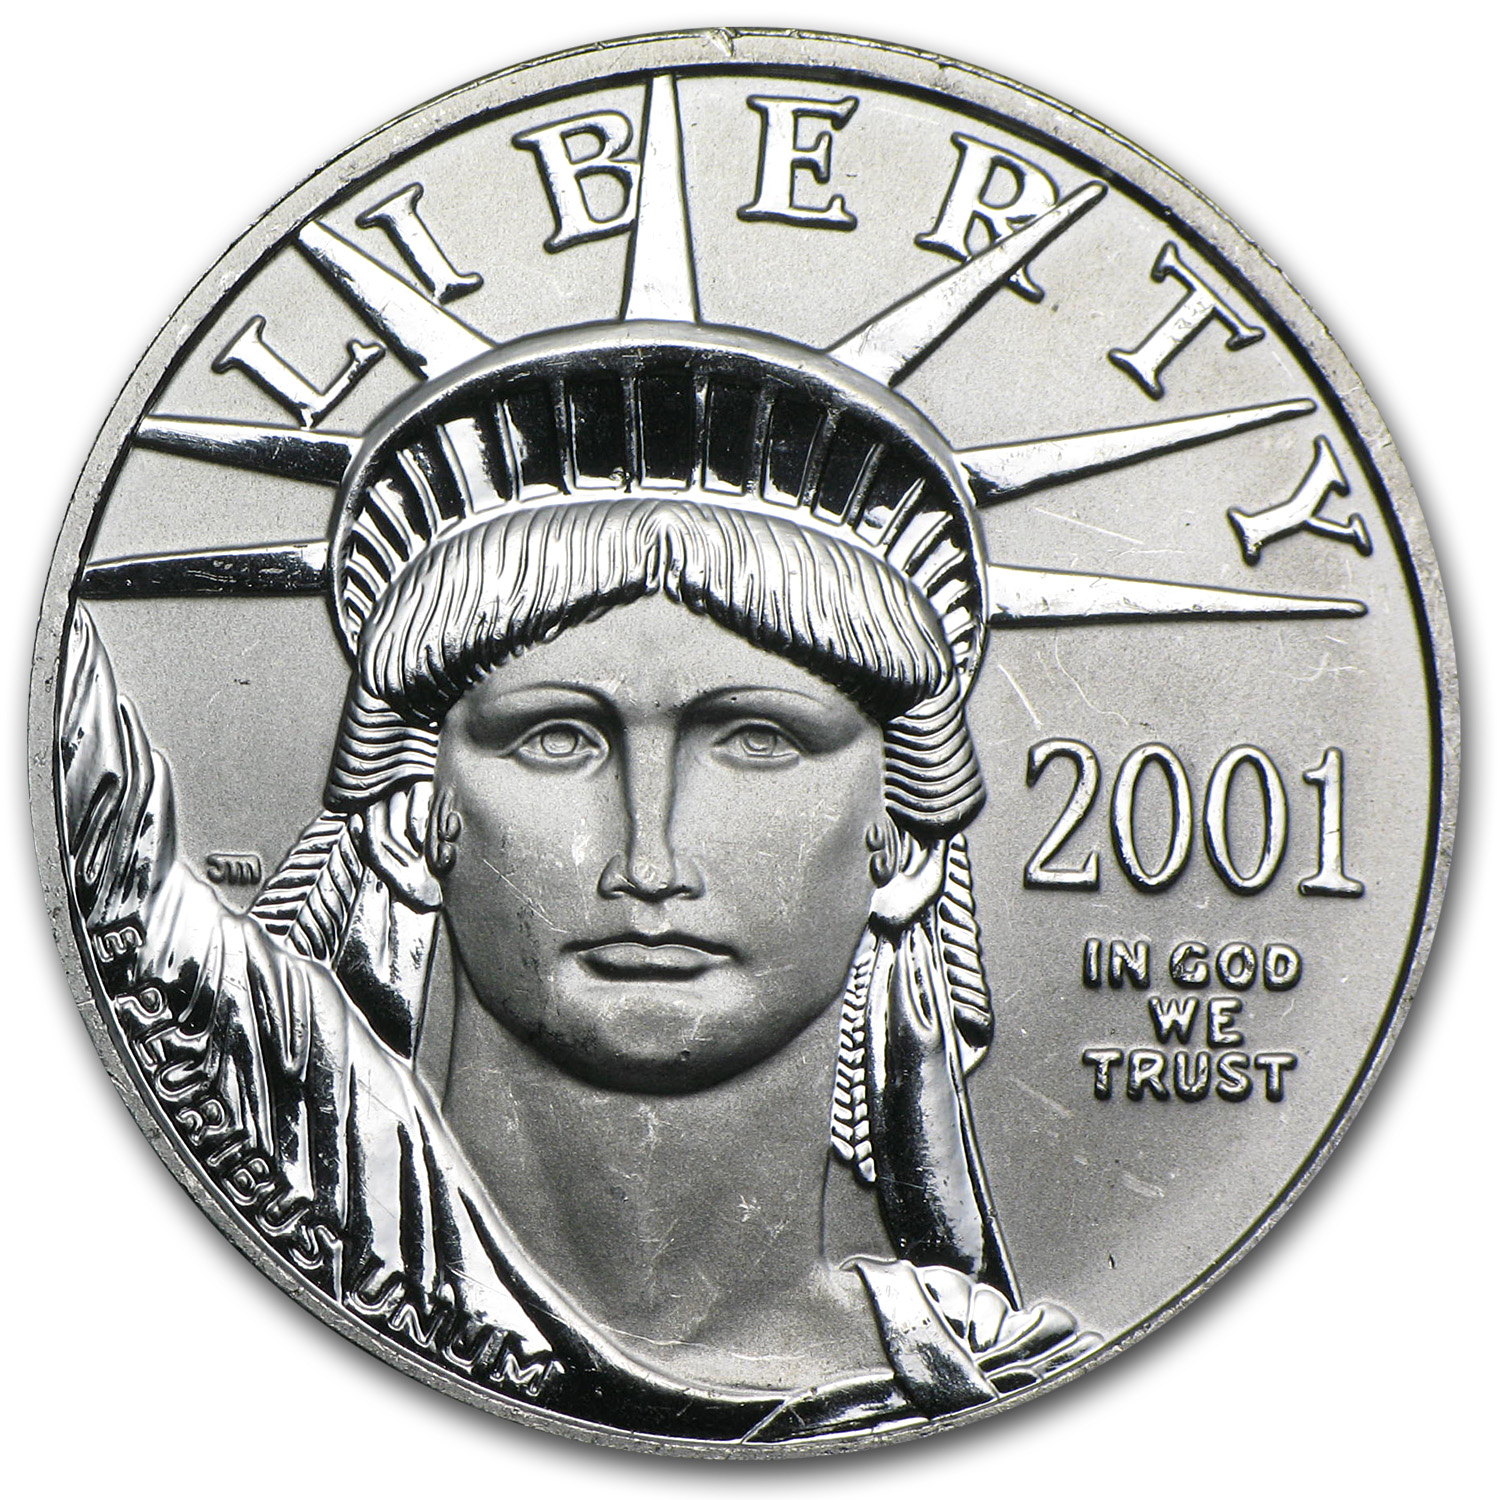 2001 1/2 oz Platinum American Eagle - Brilliant Uncirculated